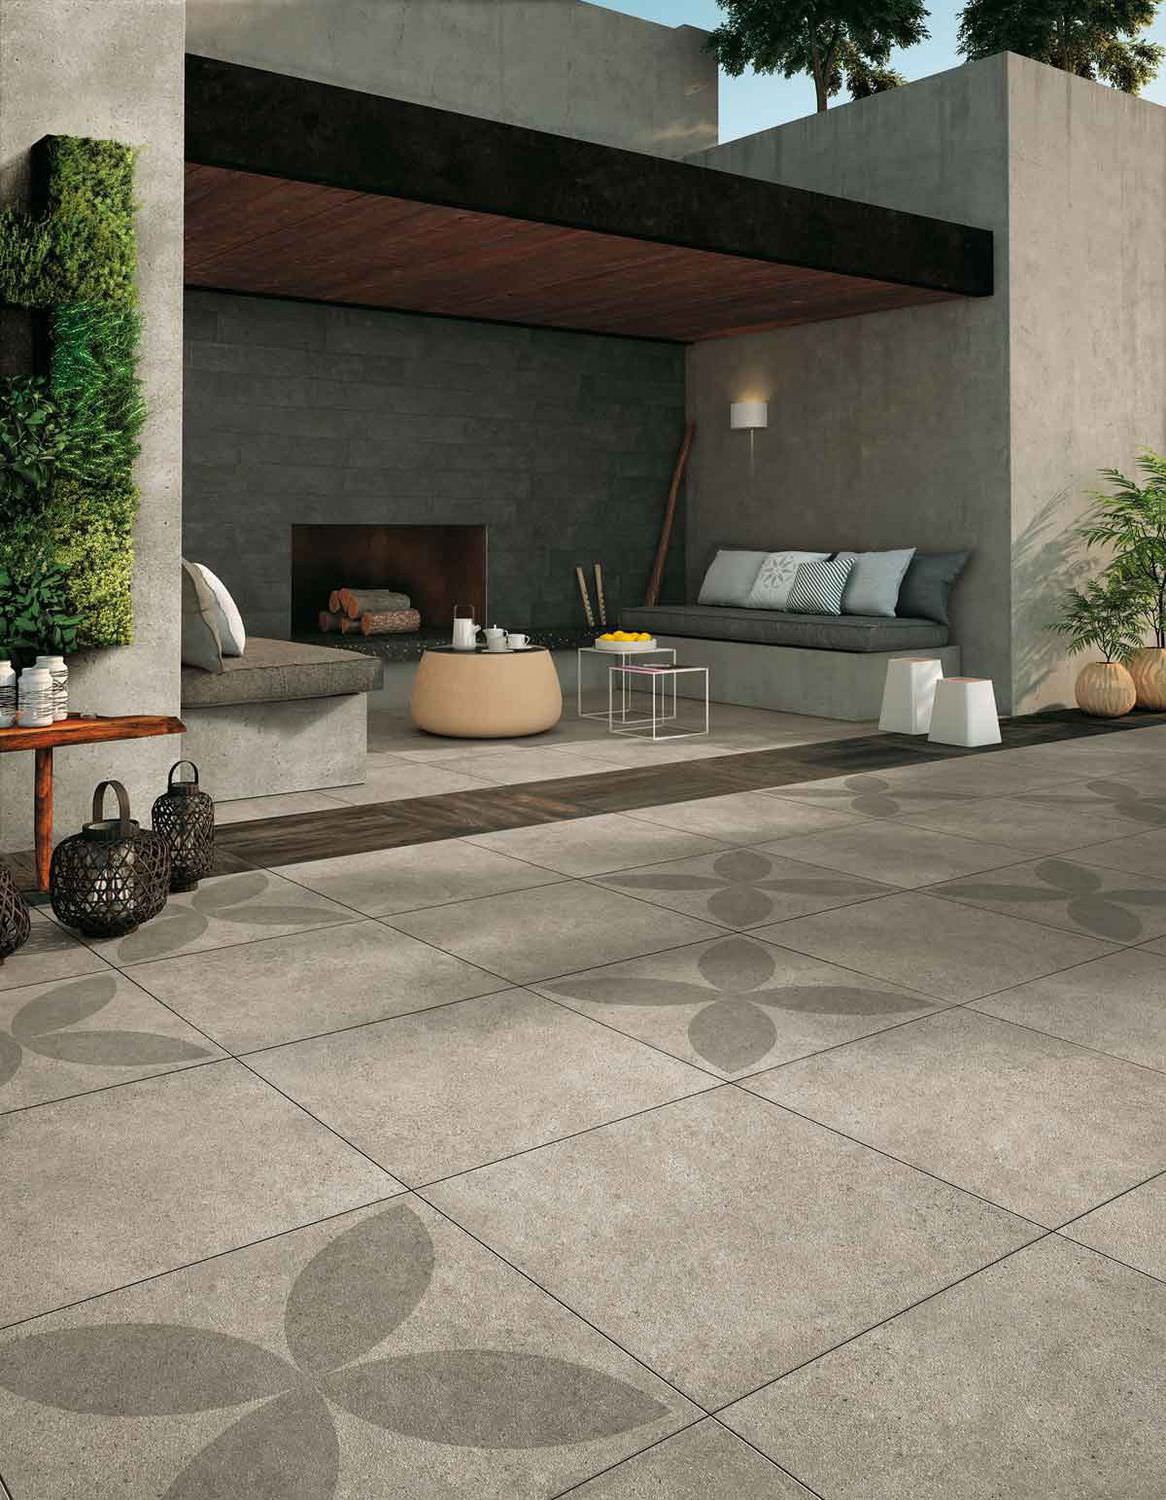 Indoor tile outdoor floor for floors mashup mirage indoor tile outdoor floor for floors mashup mirage granito ceramico dailygadgetfo Gallery